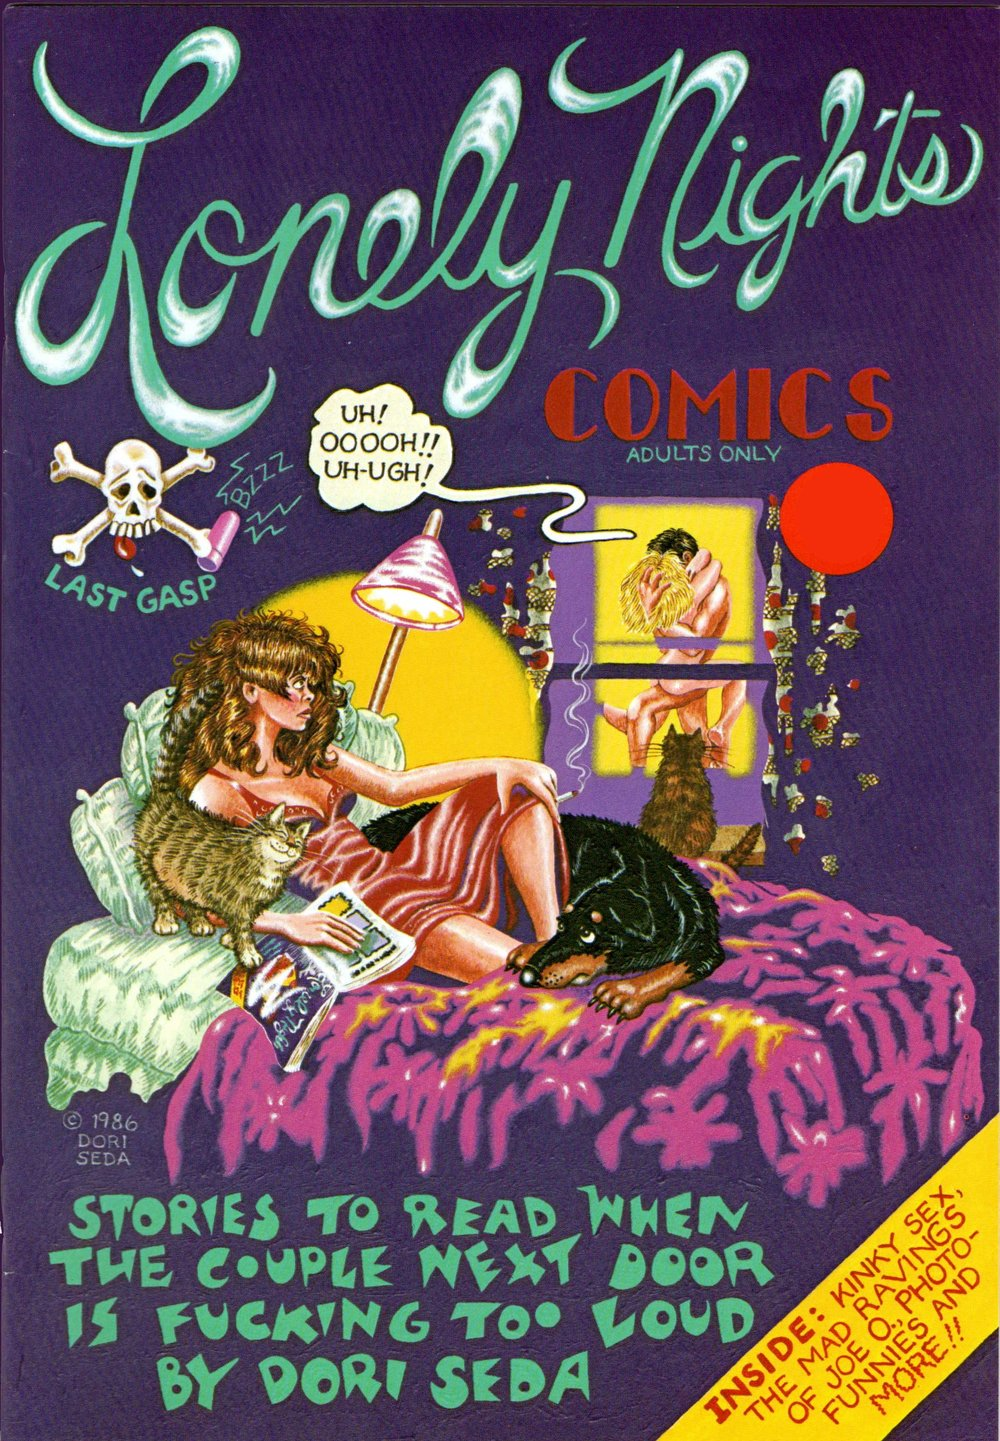 Vintage autobio comix by inimitable cult hero Dori Seda.  Lonely Nights  was the only solo comic published in her lifetime.